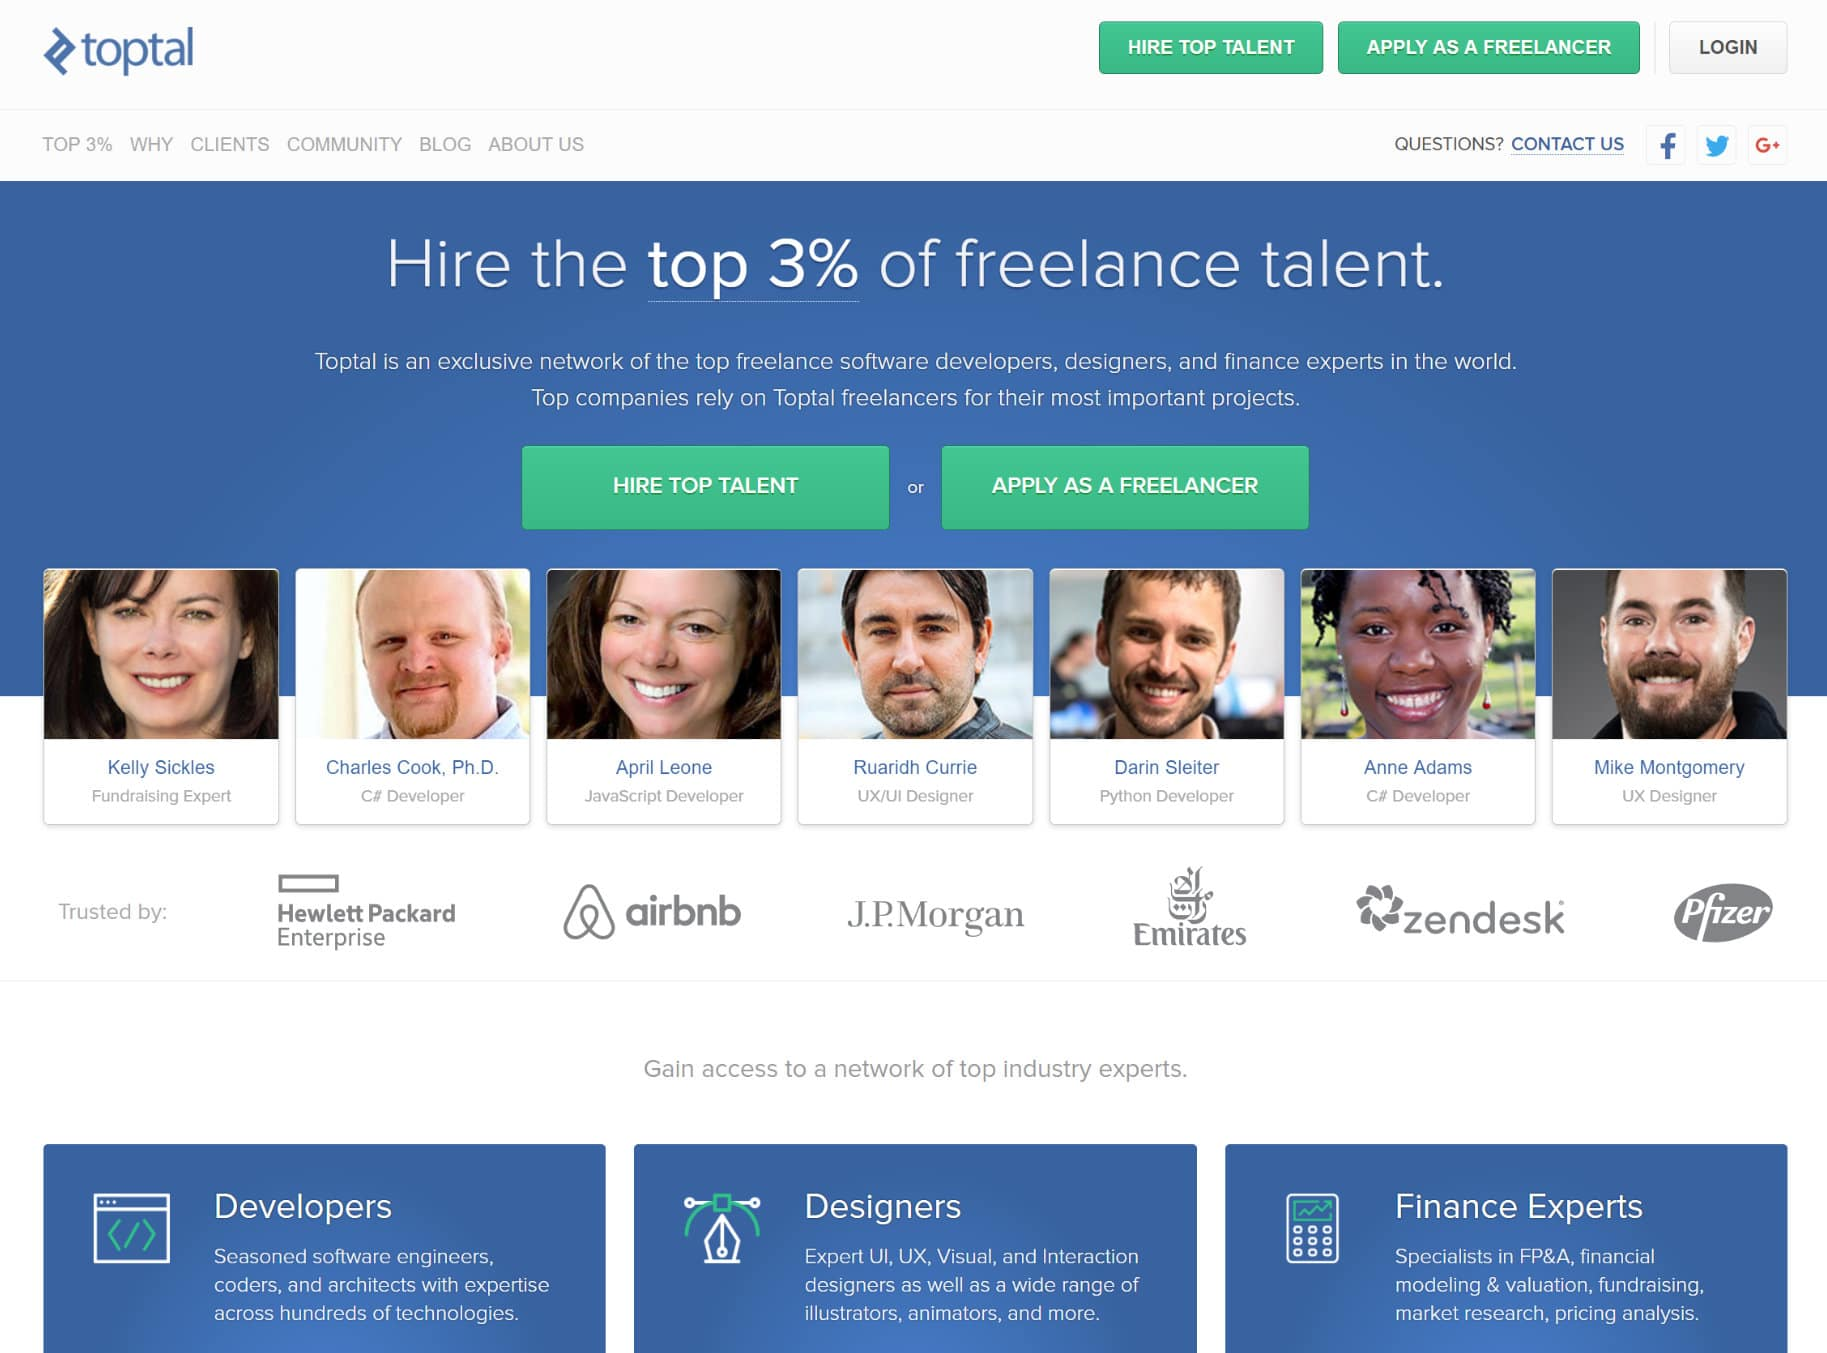 Find WordPress developers for hire at Toptal